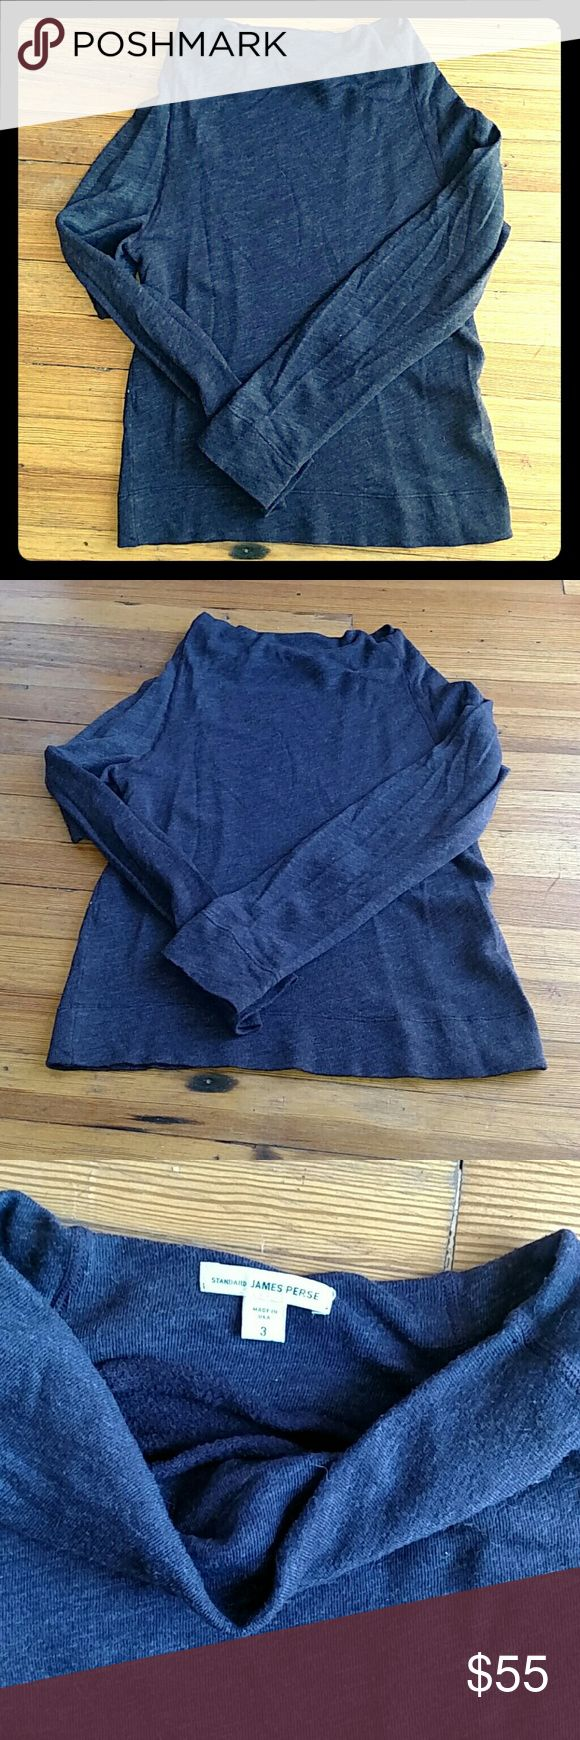 Cozy James Perse Sweatshirt Excellent condition, worn a handful of times, just a hair too small for me. Fits like a medium, James Perse size 3. Color is a deep heather plum. No signs of wear, no marks, pulls or holes. Beautiful top! James Perse Tops Sweatshirts & Hoodies